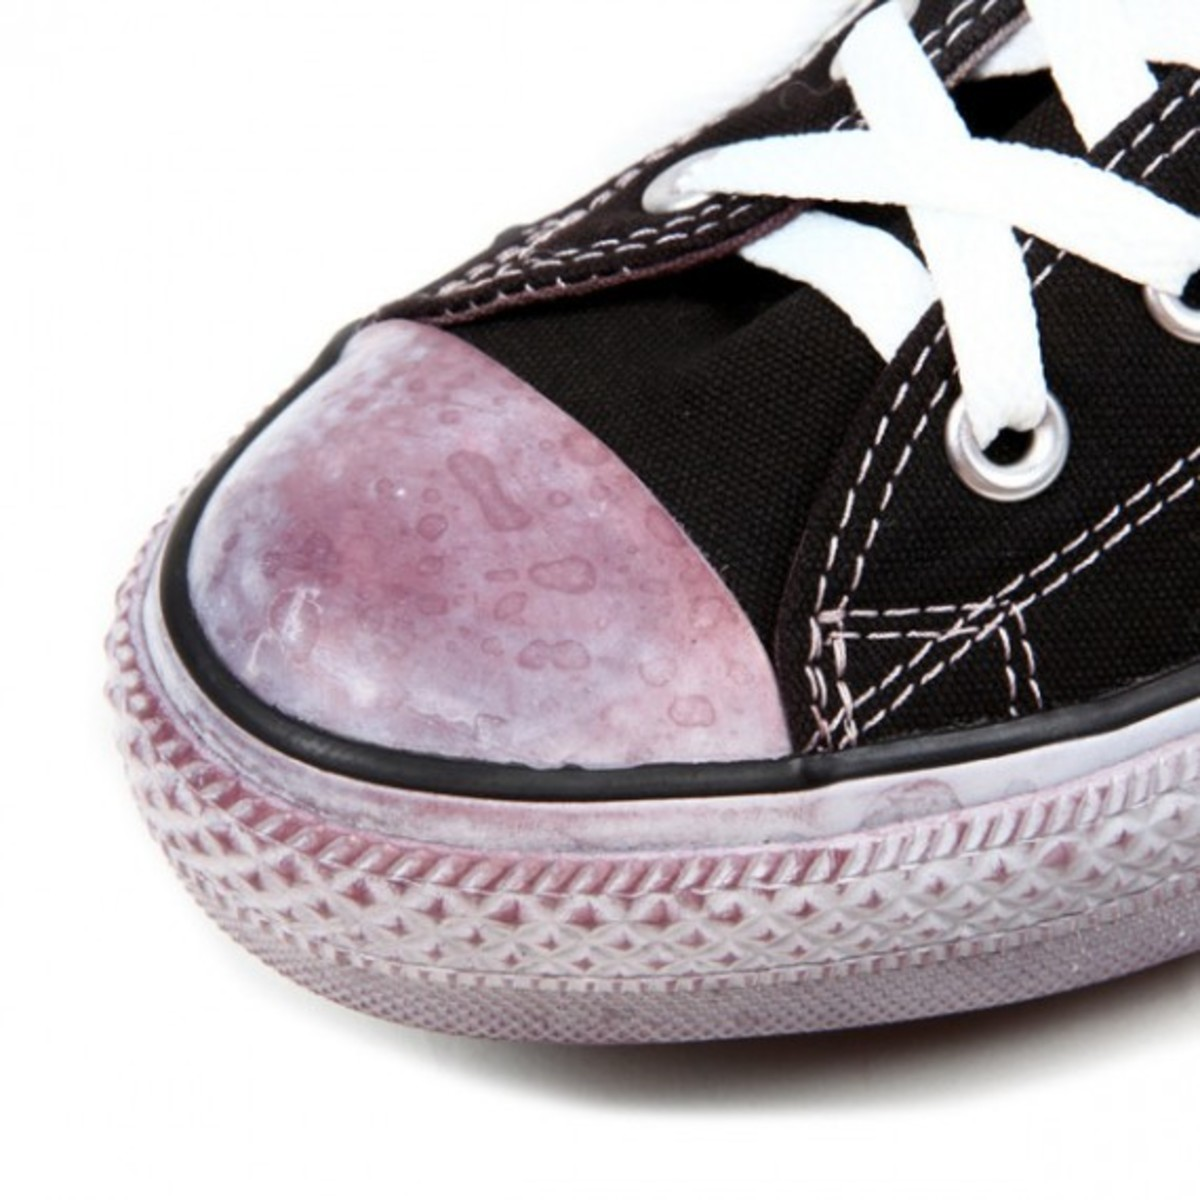 us-alteration-union-custom-made-converse-ct-sneakers-13